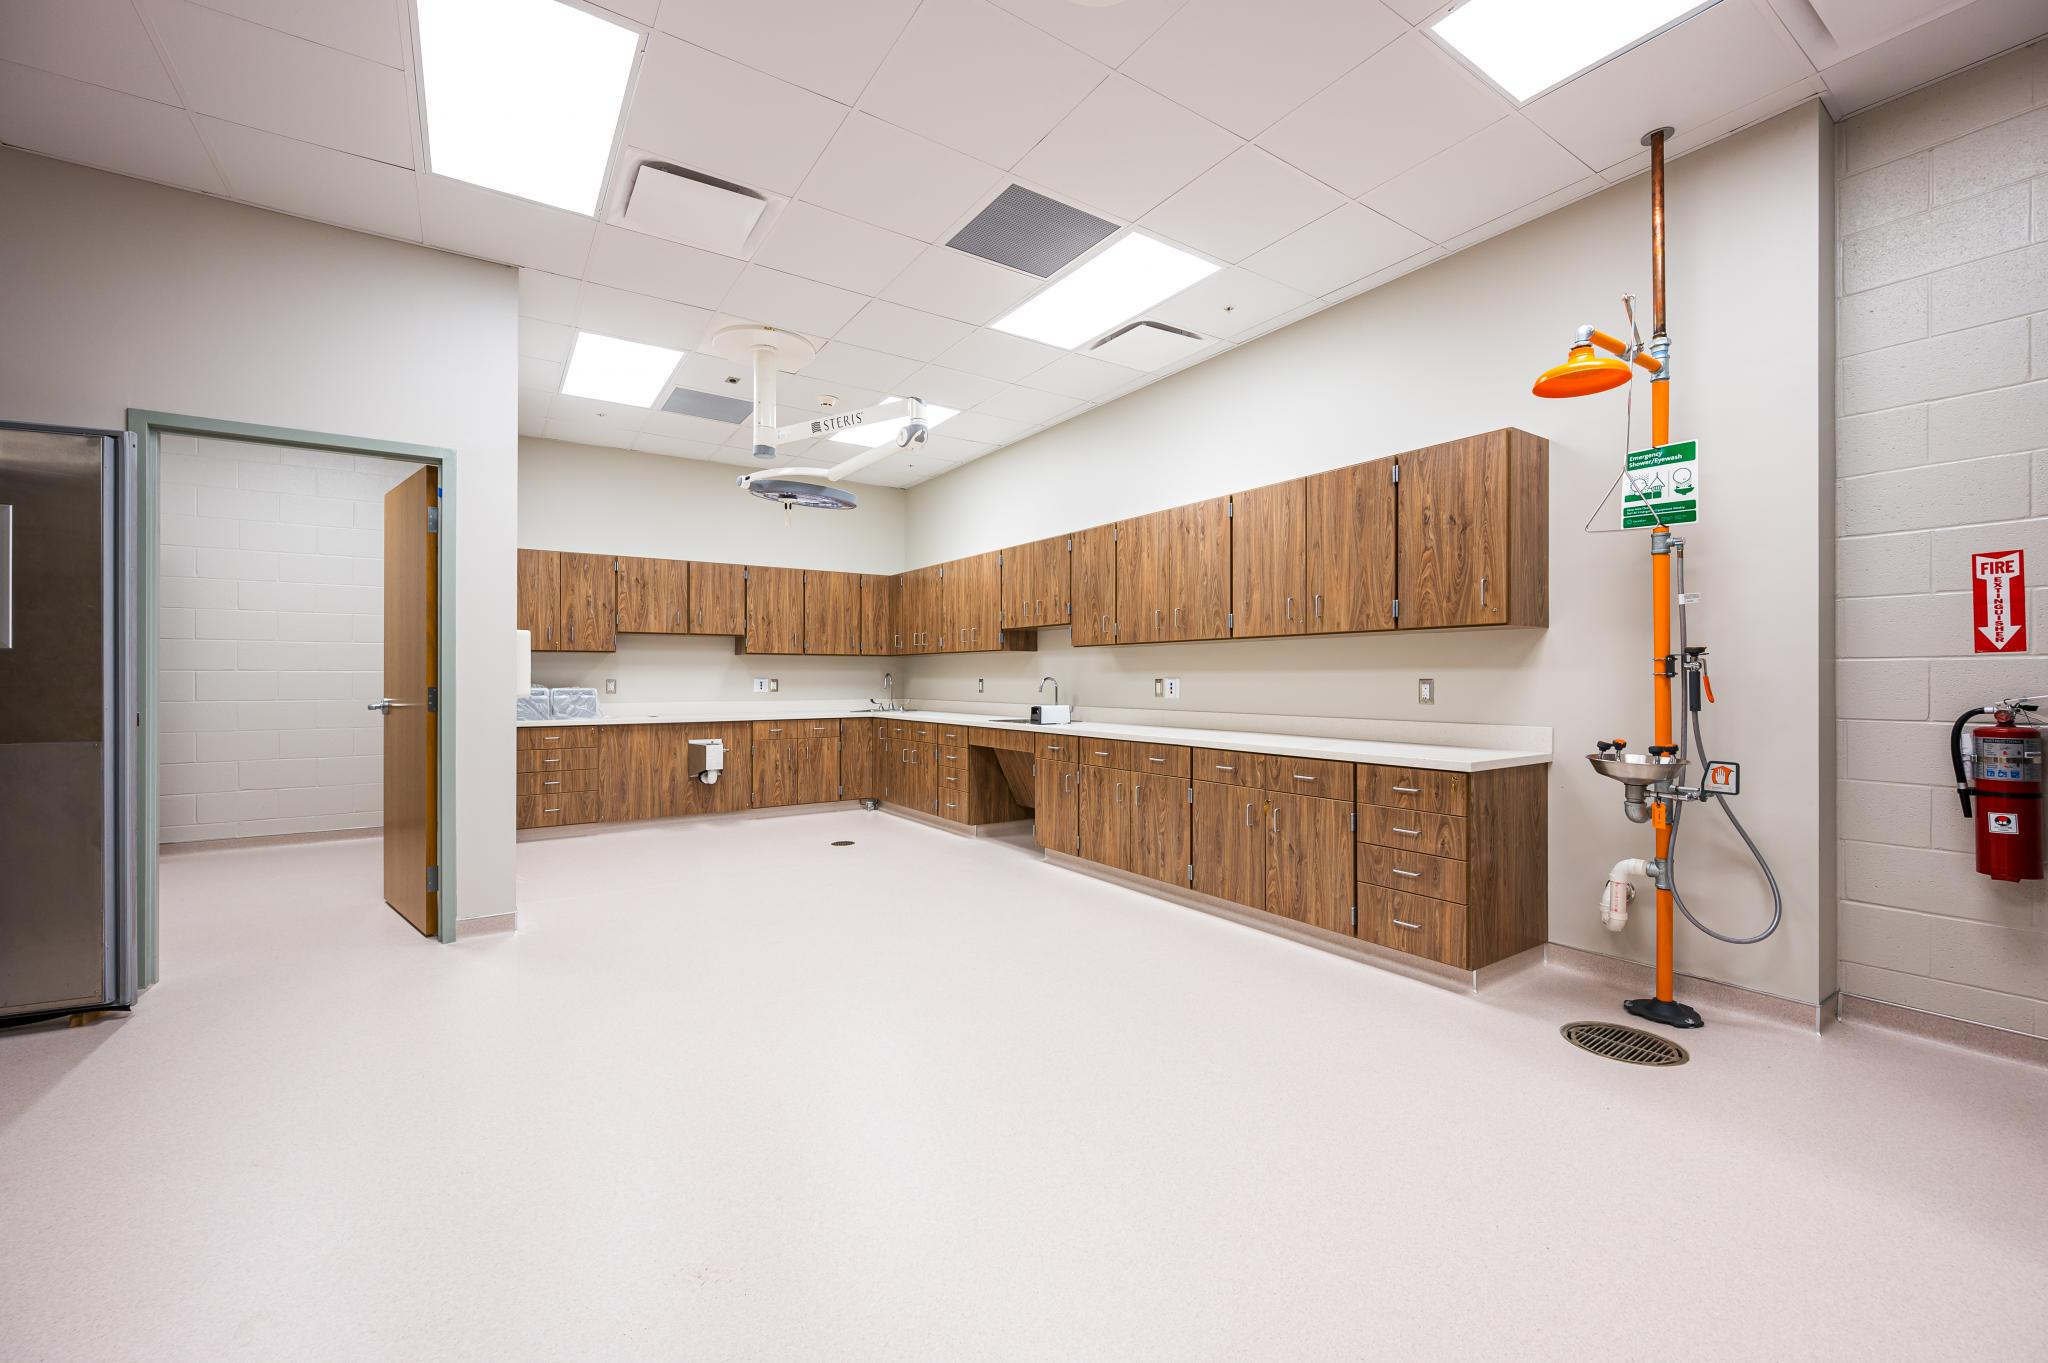 an image of a coroner's office